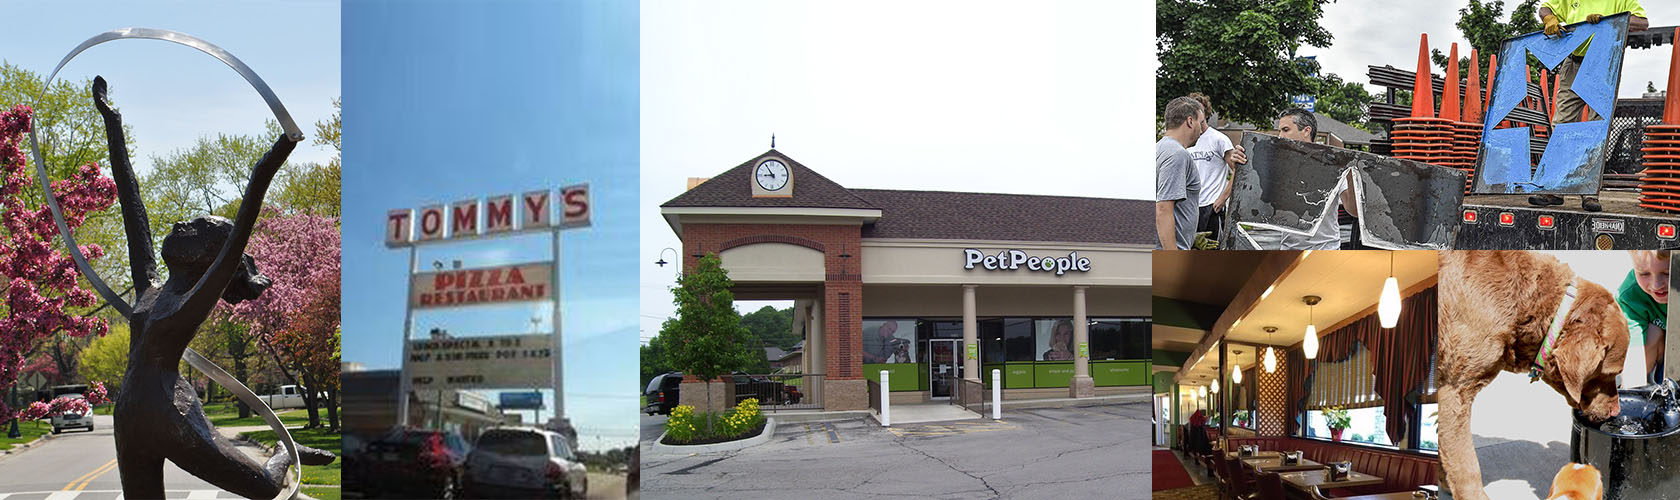 Pet people store collage in Upper Arlington